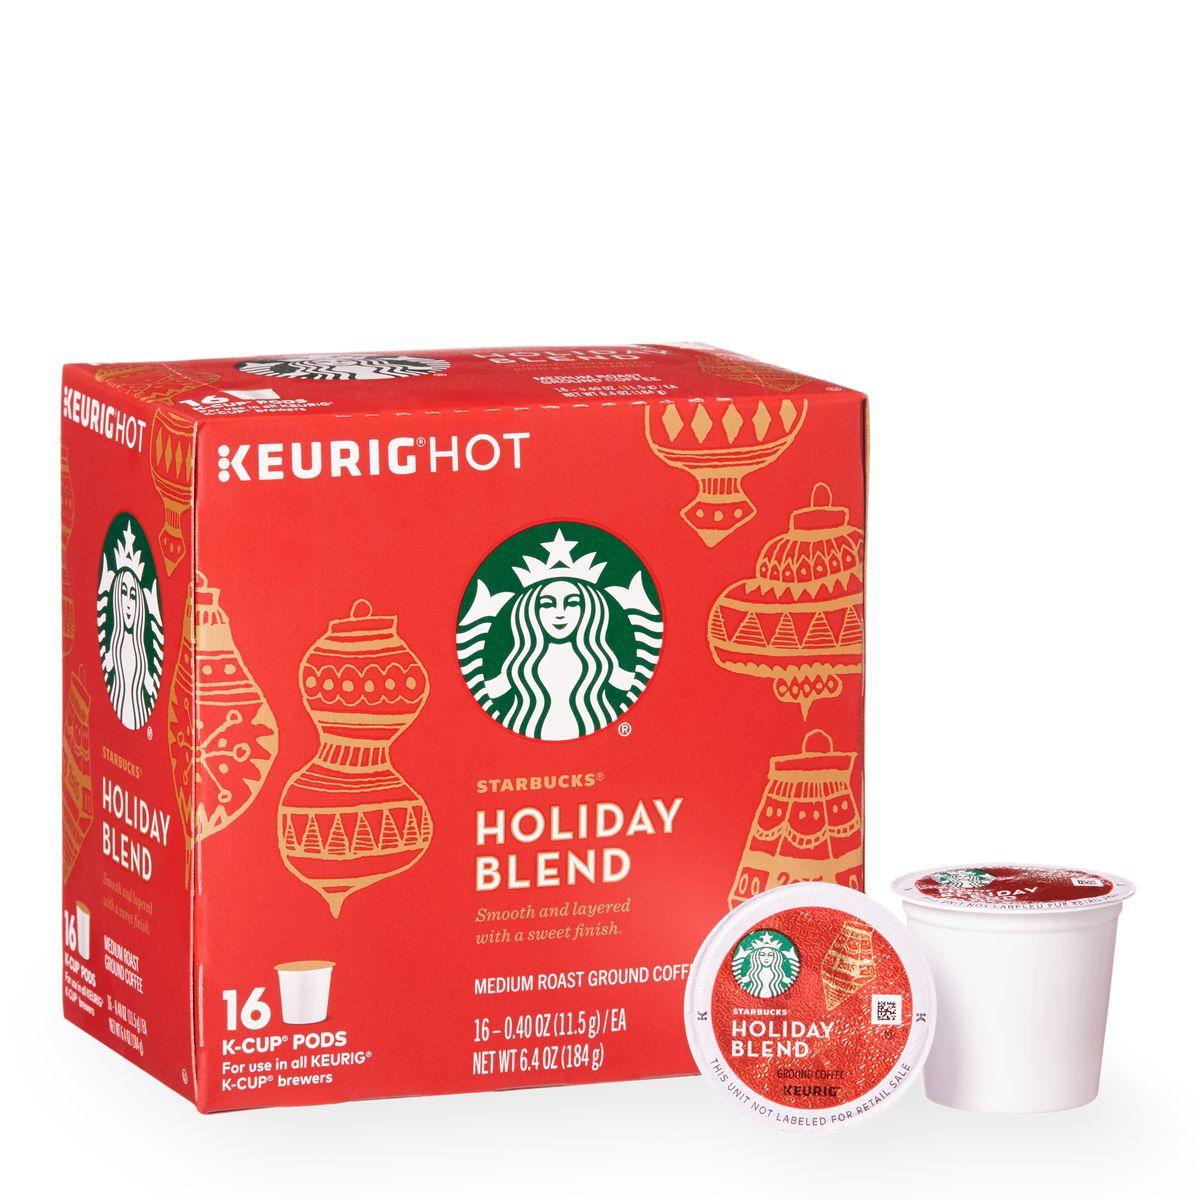 Buy One Get One Free Starbucks Holiday Blend K-Cup Packs